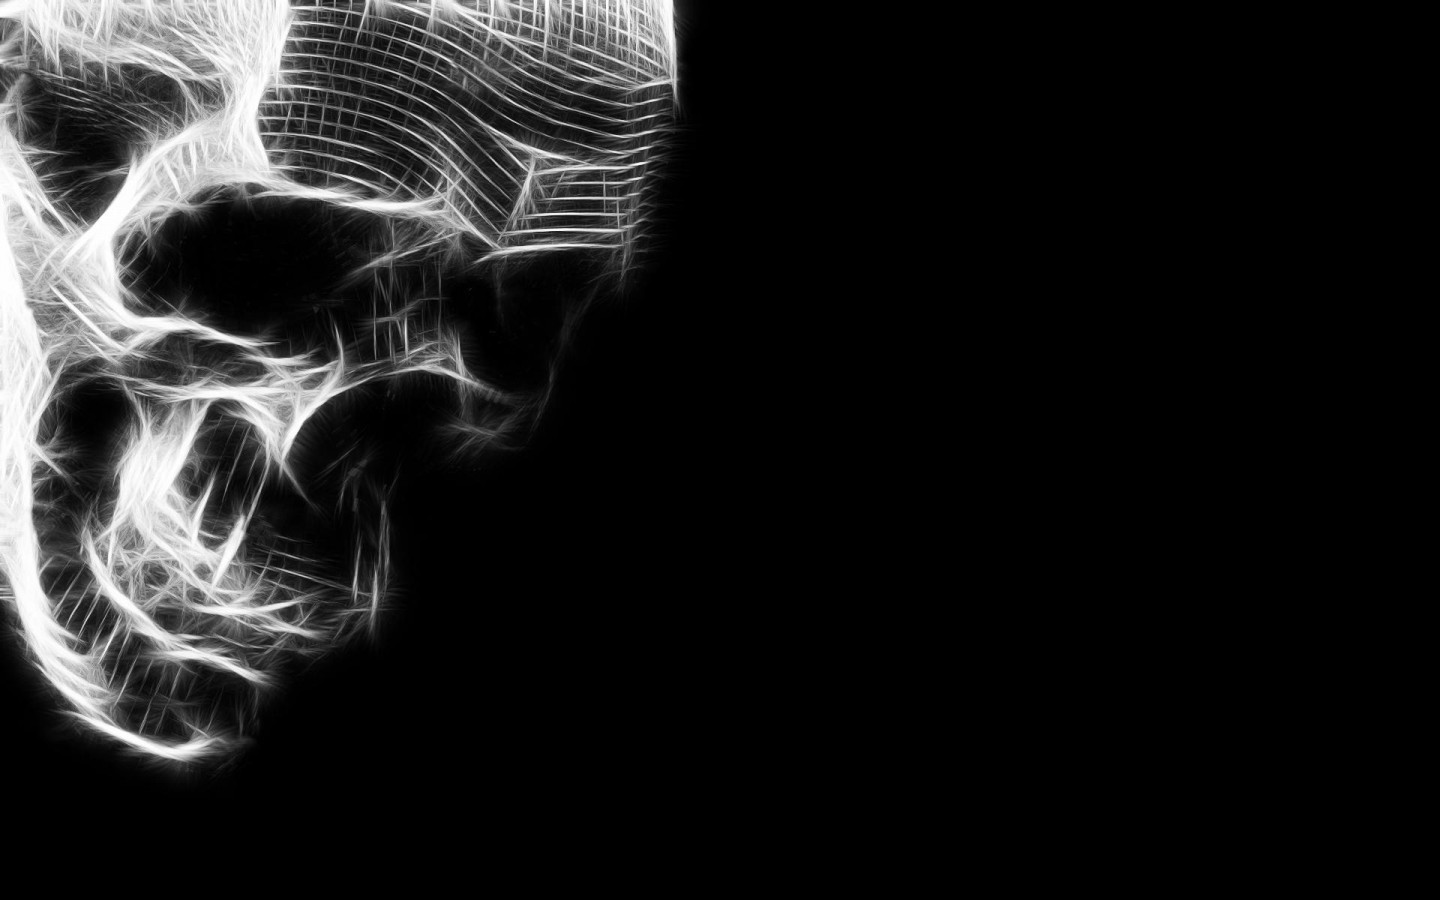 skull на черном backgroundе, background, texture, photo, skull on black texture background